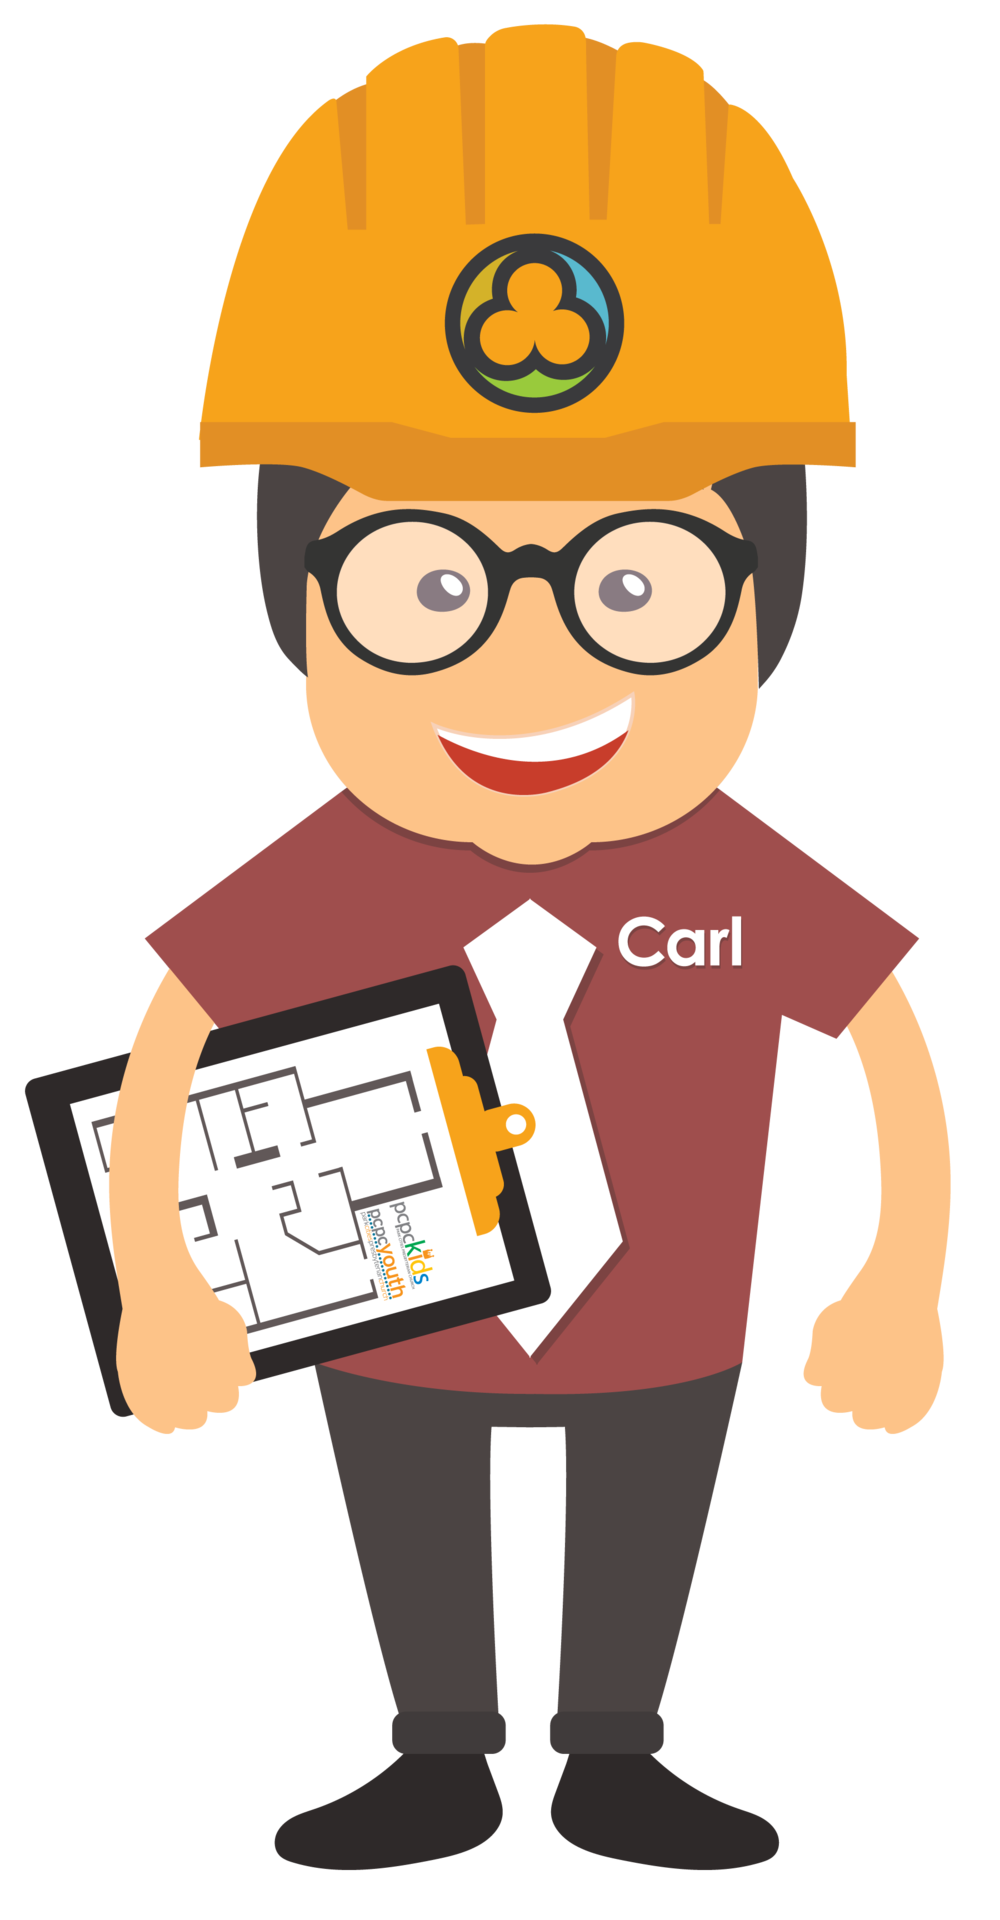 Meet Carl - We would like to introduce Carl to you. He is our new construction communication expert. Anytime you see Carl, know there is valuable EXTEND updates just for you!As with any construction project, there are stages and timelines that help us move orderly from beginning to end. Carl has these on his trusted clipboard. But even with great planning, there are also delays and changes that will occur. Carl will do his best to communicate these in advance.This week, the fence was erected to protect us from the demolition and removal of Oak Lawn East. We know curiosity can kill the cat, but please remain safely on the outside of the fence. We will share photos on extend.pcpc.org/updates/ as changes take place. The next stage will be to begin digging…a really big hole for our parking garage. So again, please keep your family and friends at a safe distance during construction.Shuttle service is now available! As we begin construction, we will provide convenient shuttle park & ride service from the garage on Irving Avenue (behind Tom Thumb) to the front doors of the church on Oak Lawn Avenue. It will begin at 7:30 A.M. and run until 1:00 P.M. Parking maps are available online extend.pcpc.org/updates/ and at the Information Desk.Thank you for being a part of the Park Cities Presbyterian Church family. These are exciting times for generations to come!